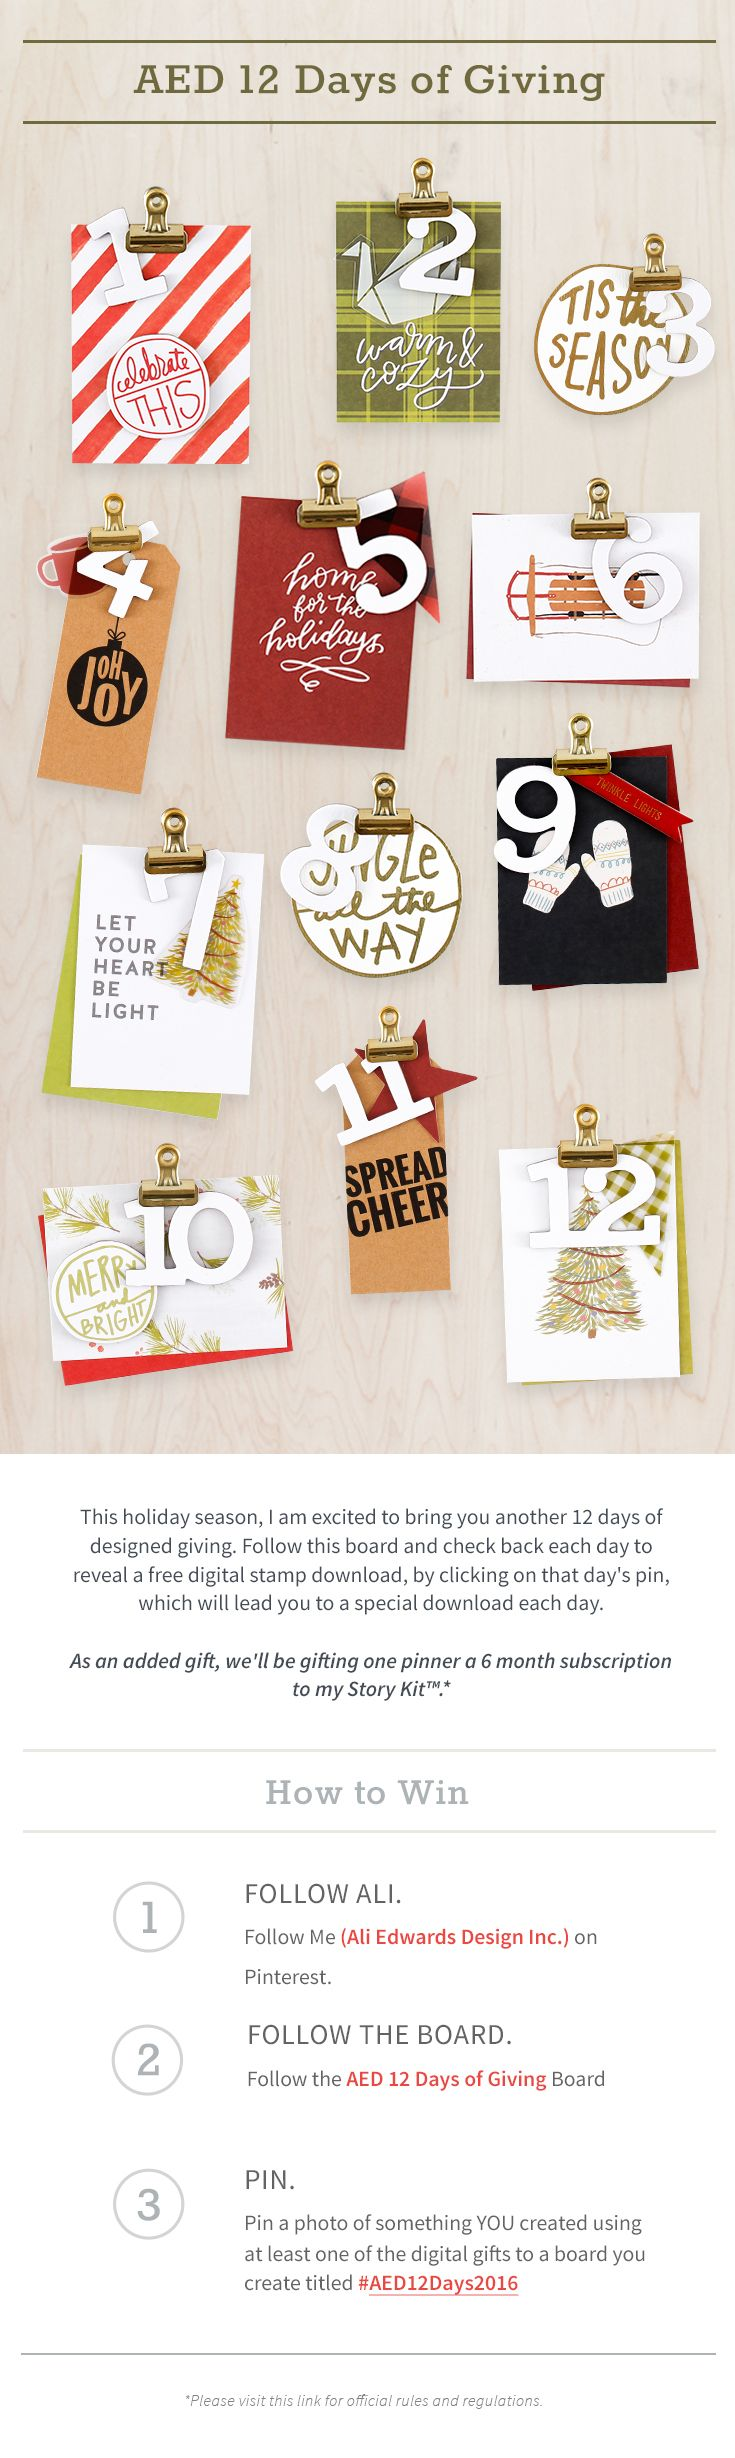 Ali Edwards - AED 12 Days of Giving on Pinterest.